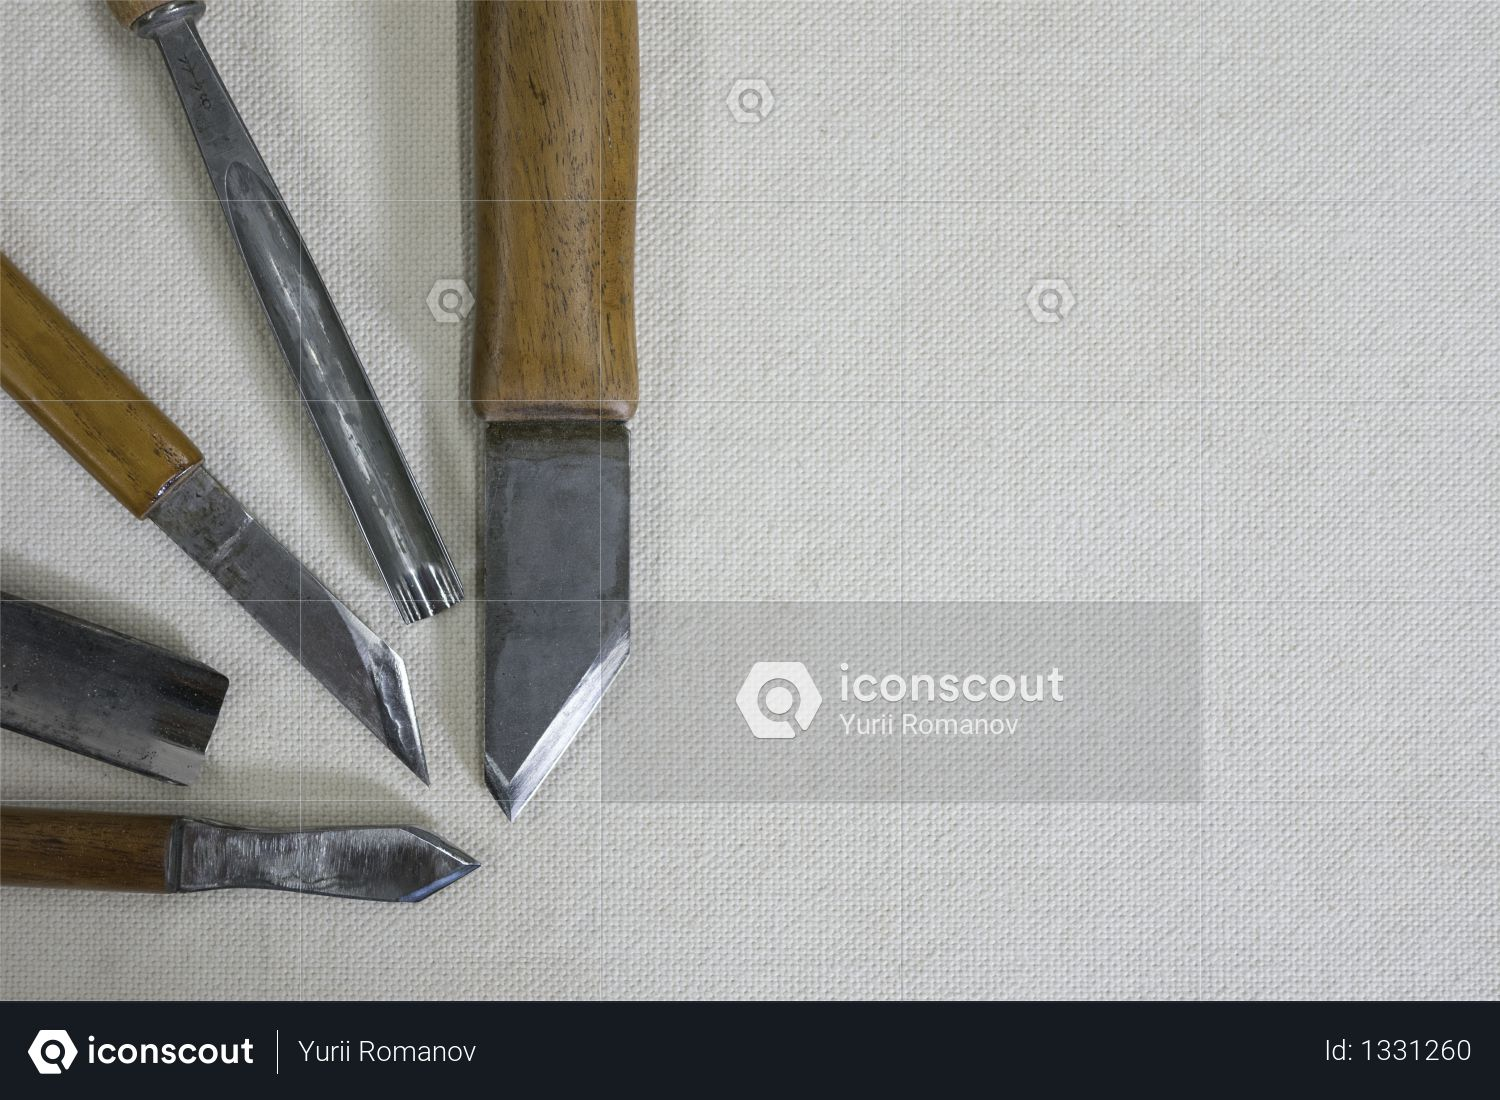 Knives and chisels for woodcarving Photo